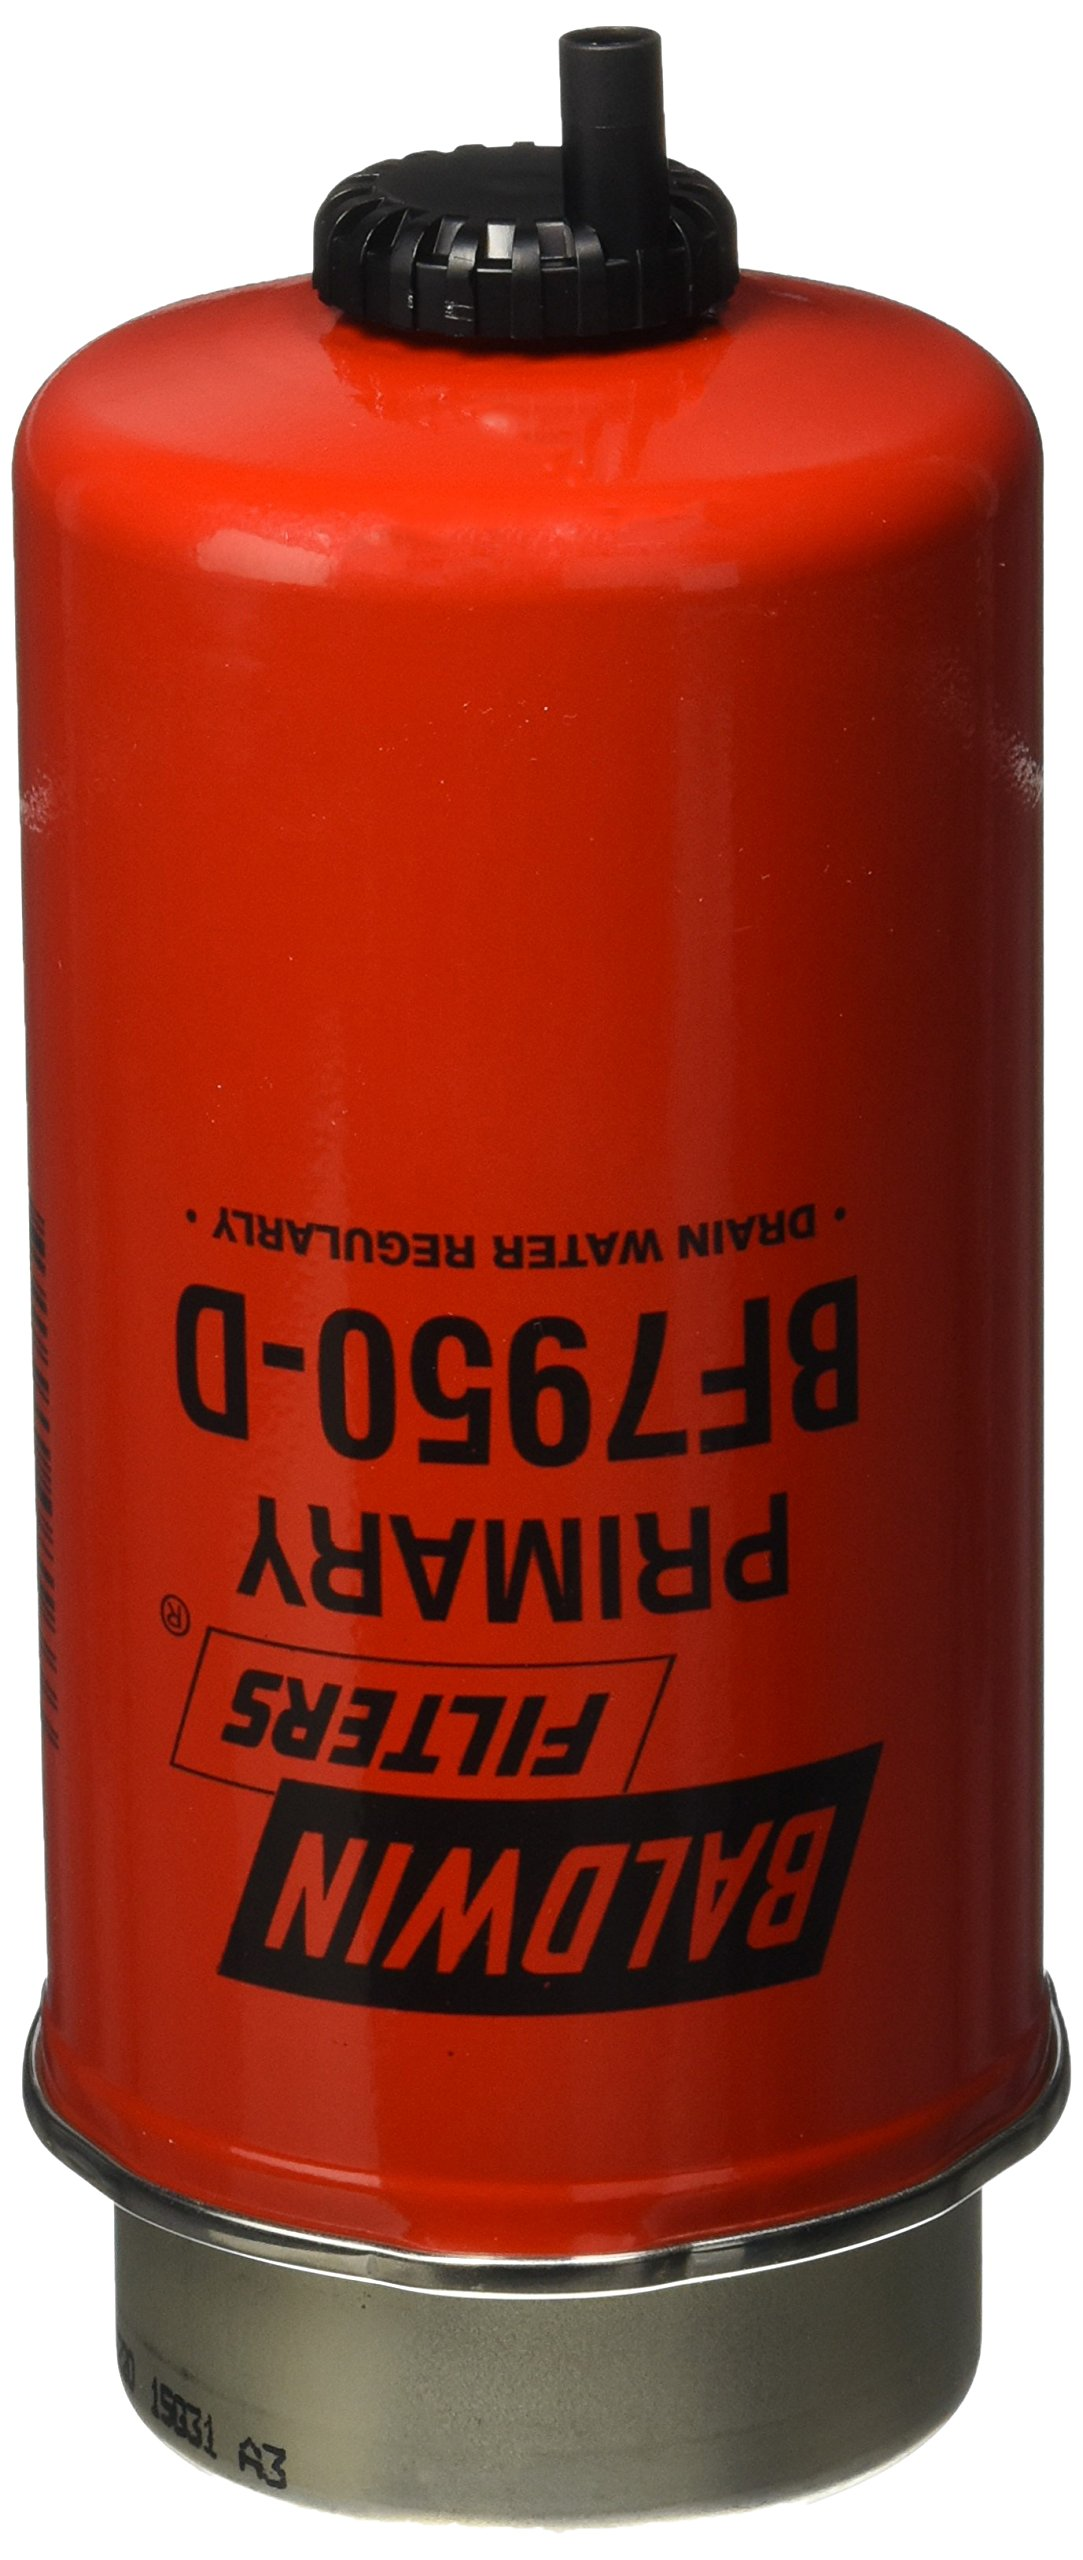 Baldwin Heavy Duty BF7950D Fuel Filter,7-21/32 x 3-1/2 x 7-21/32 In